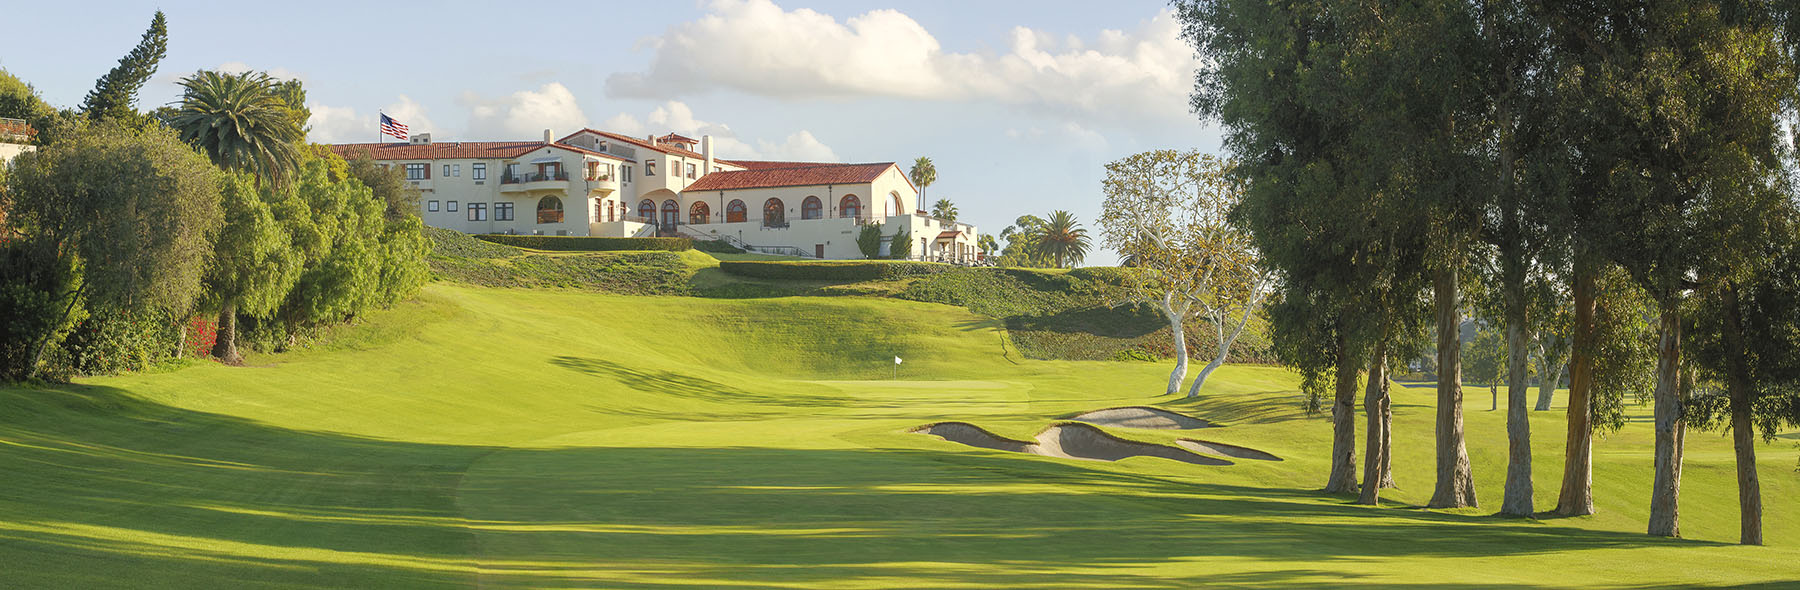 Golf Course Image - Riviera Country Club No. 18